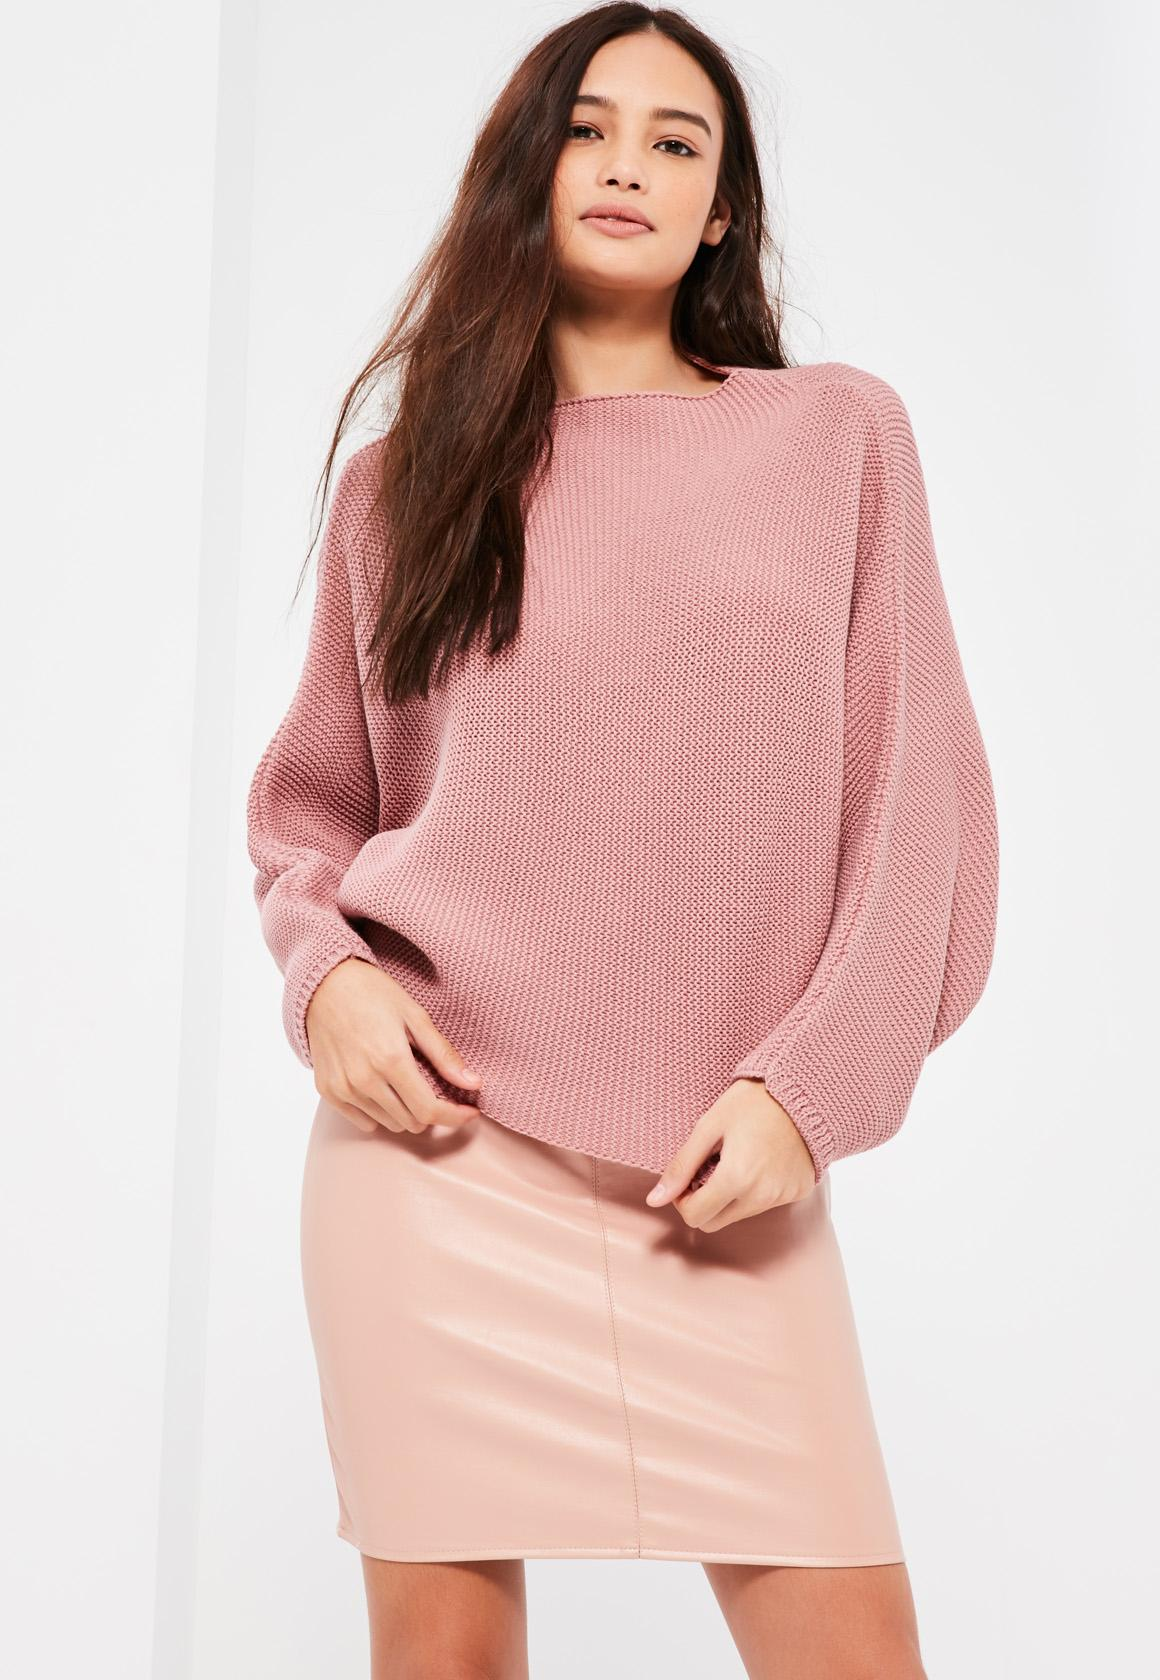 Pink Batwing Cropped Sweater   Missguided